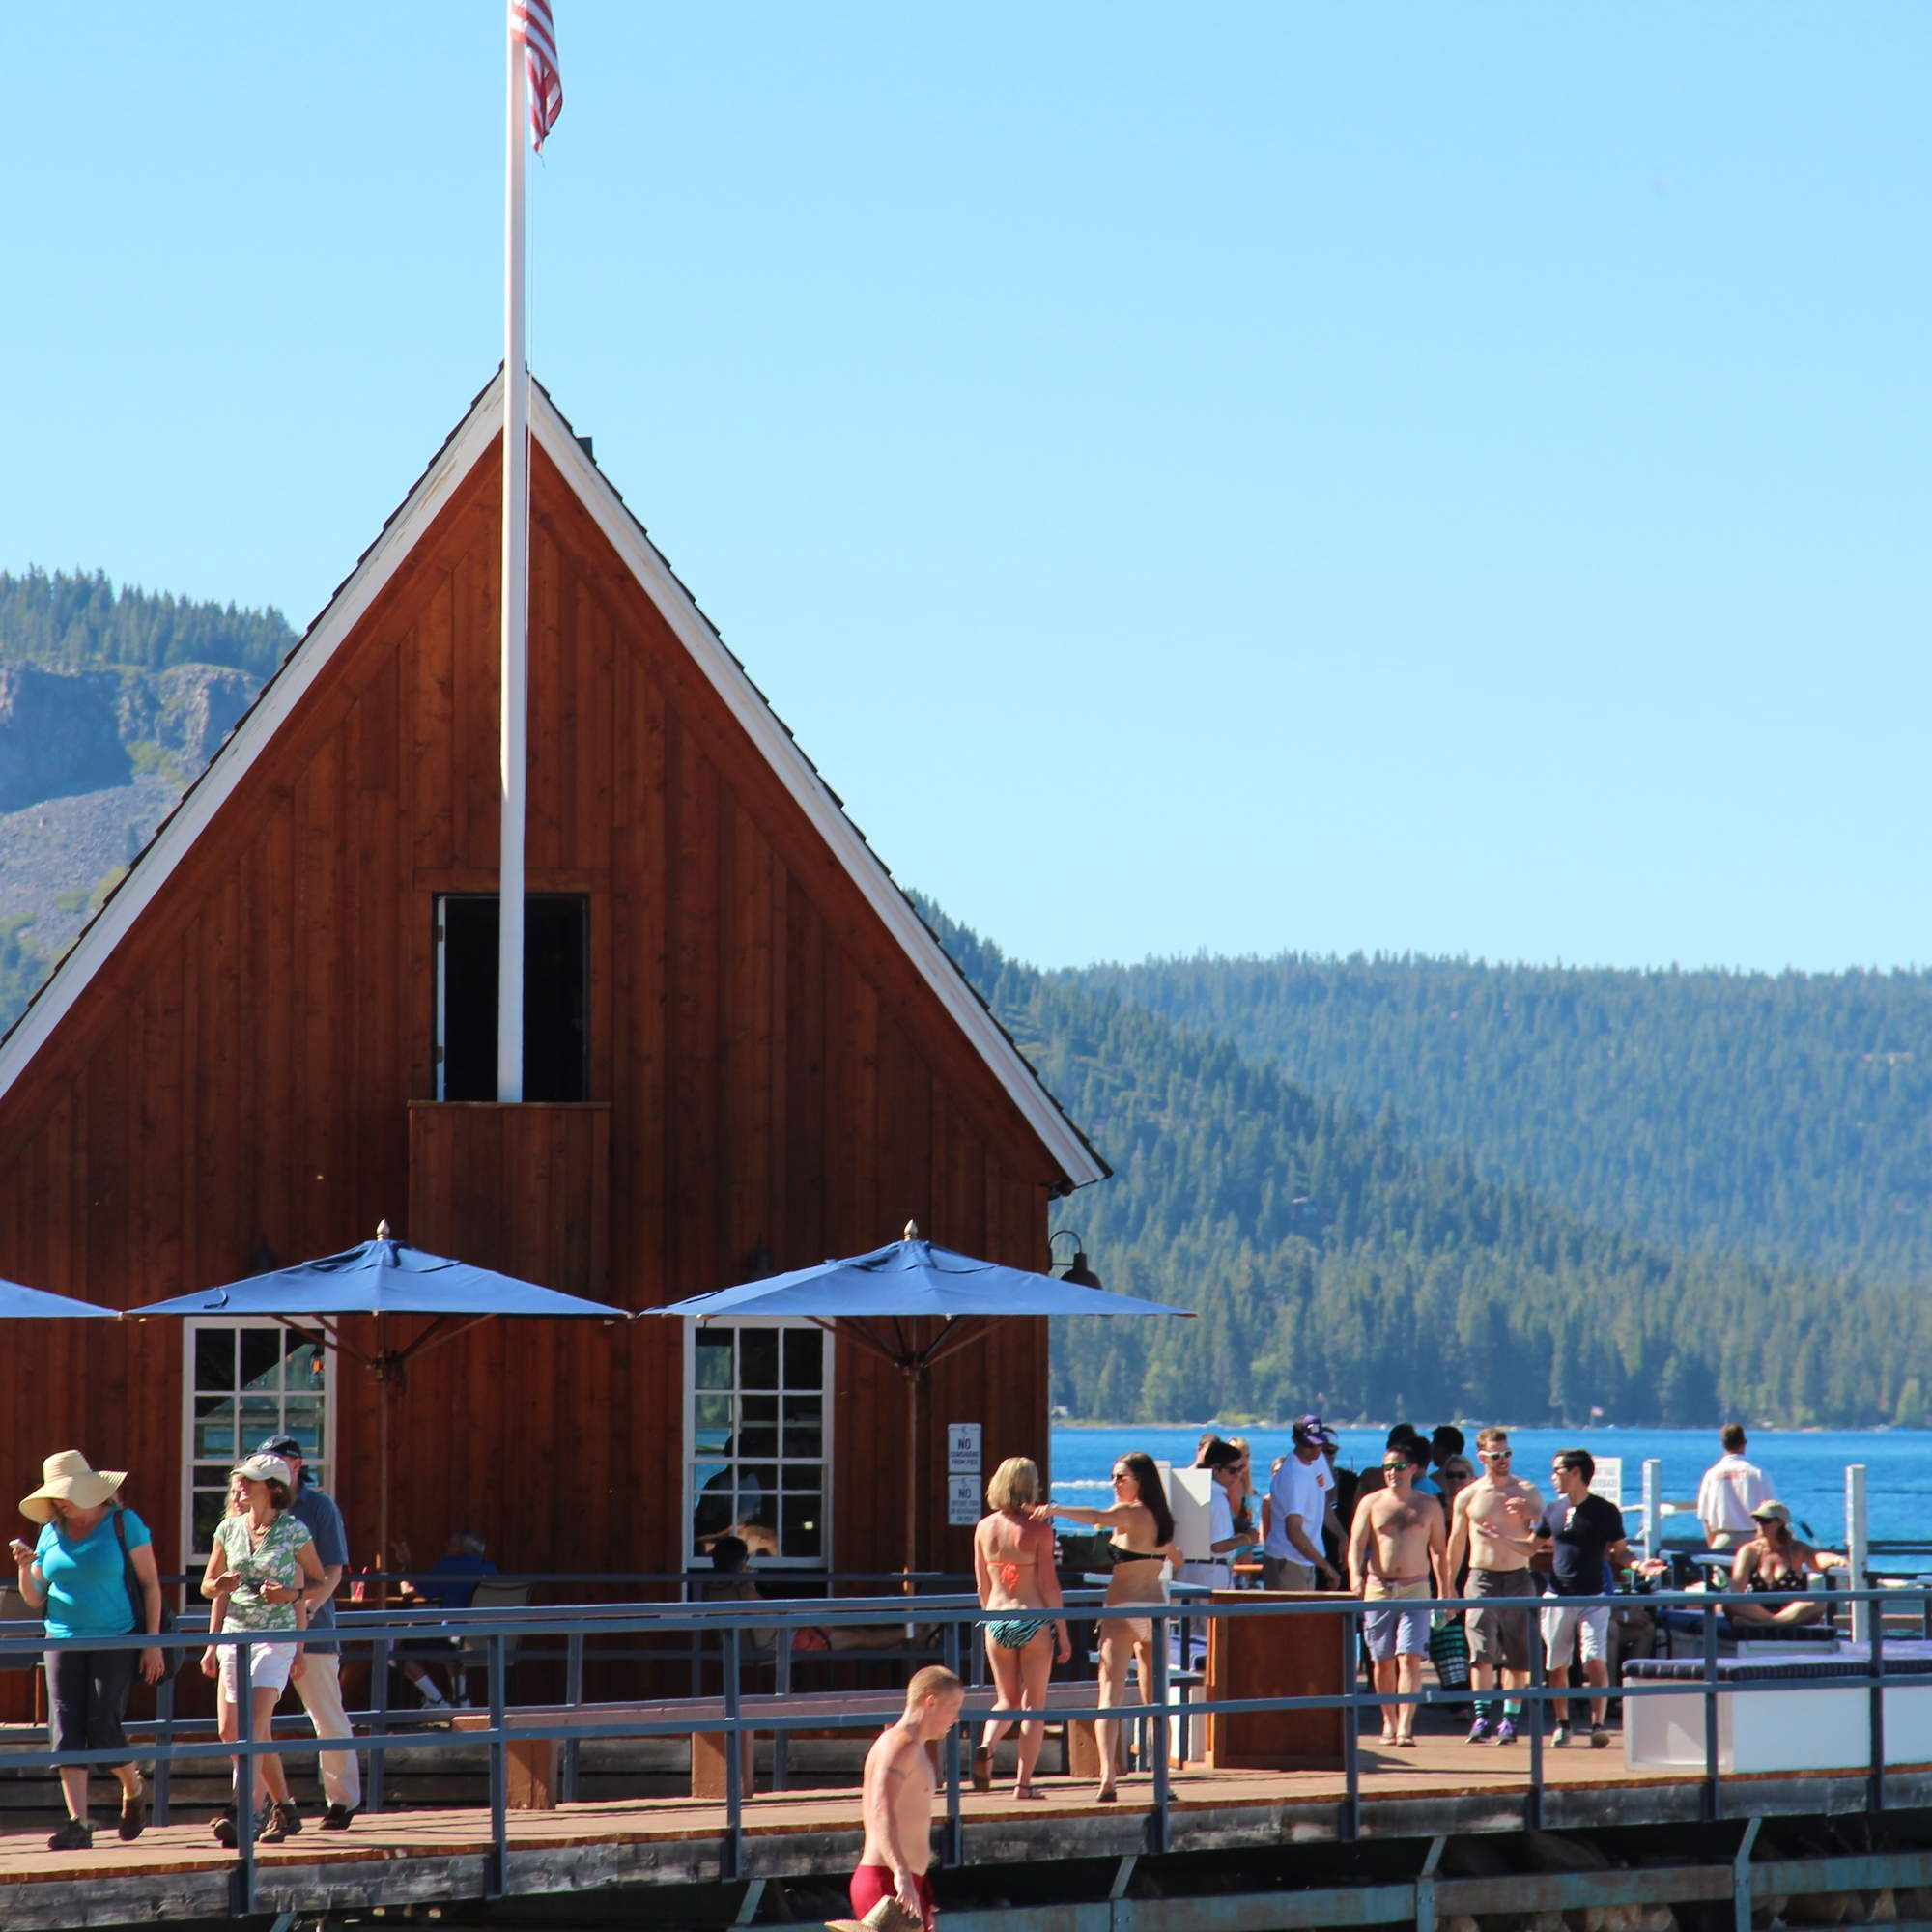 vacation lakeview retreat lake cabin getaways south rentals cabins rustic tahoe view